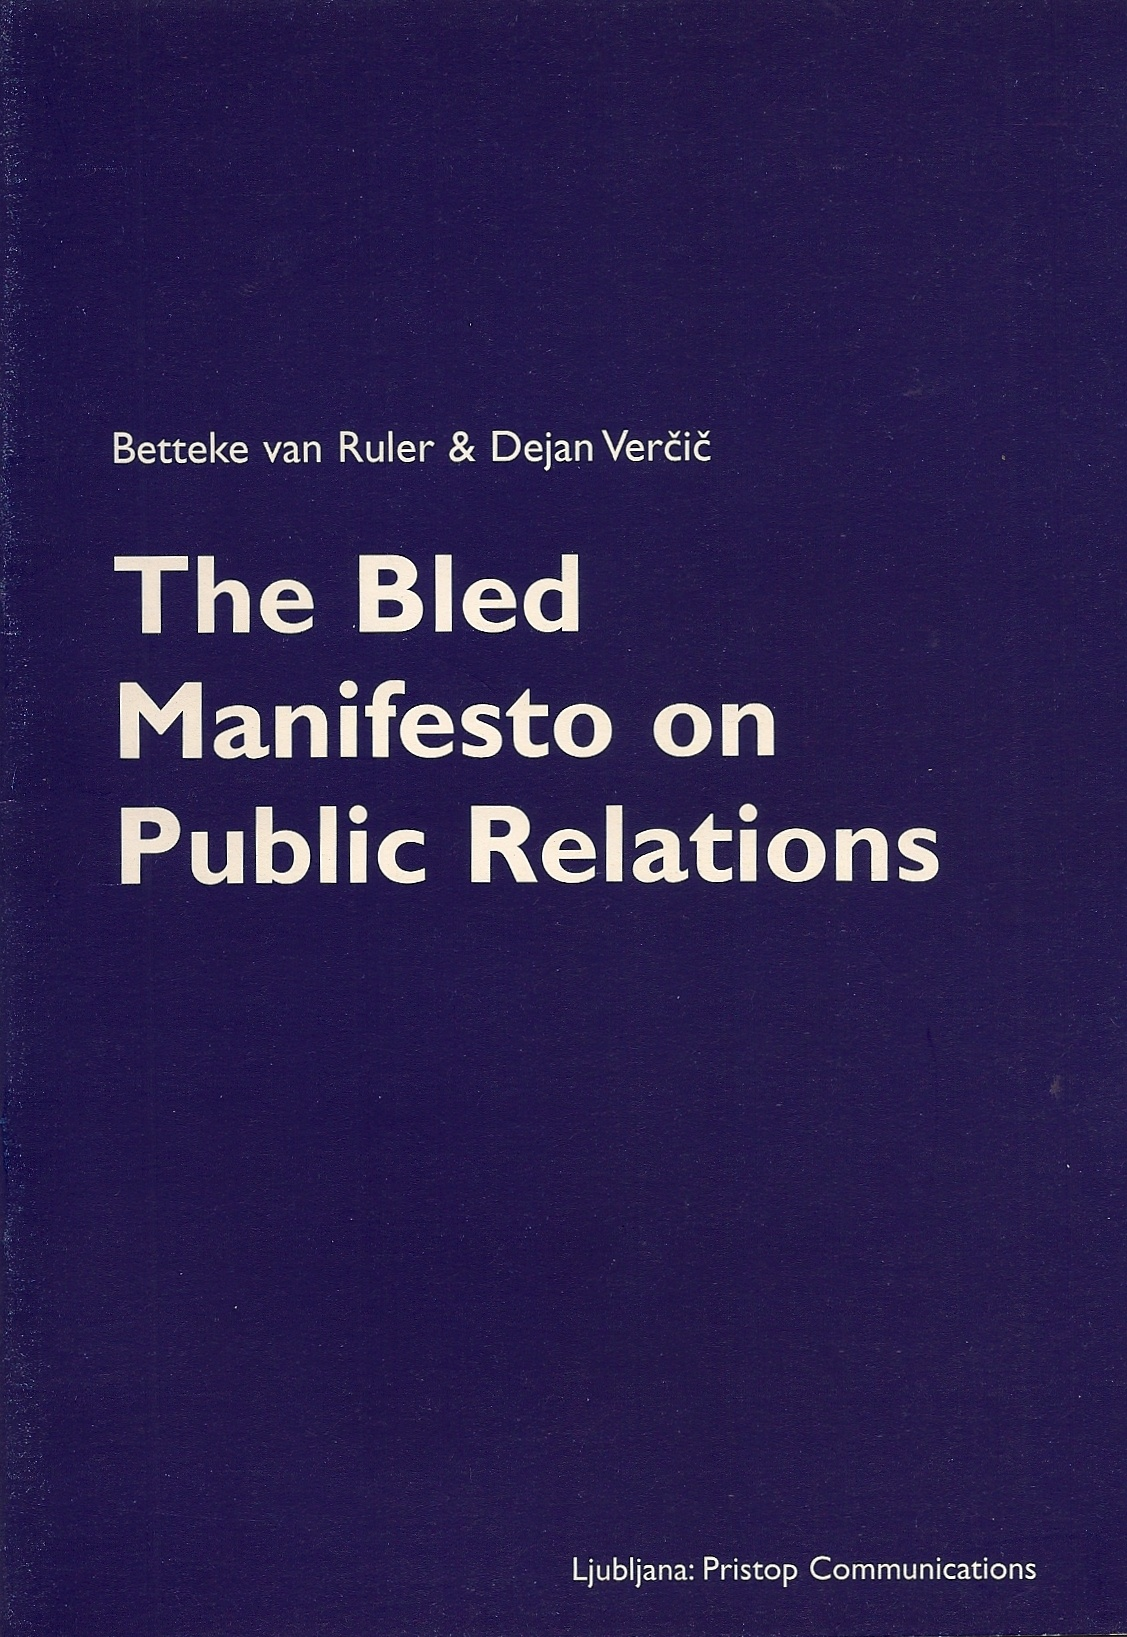 The Bled Manifesto on Public Relations